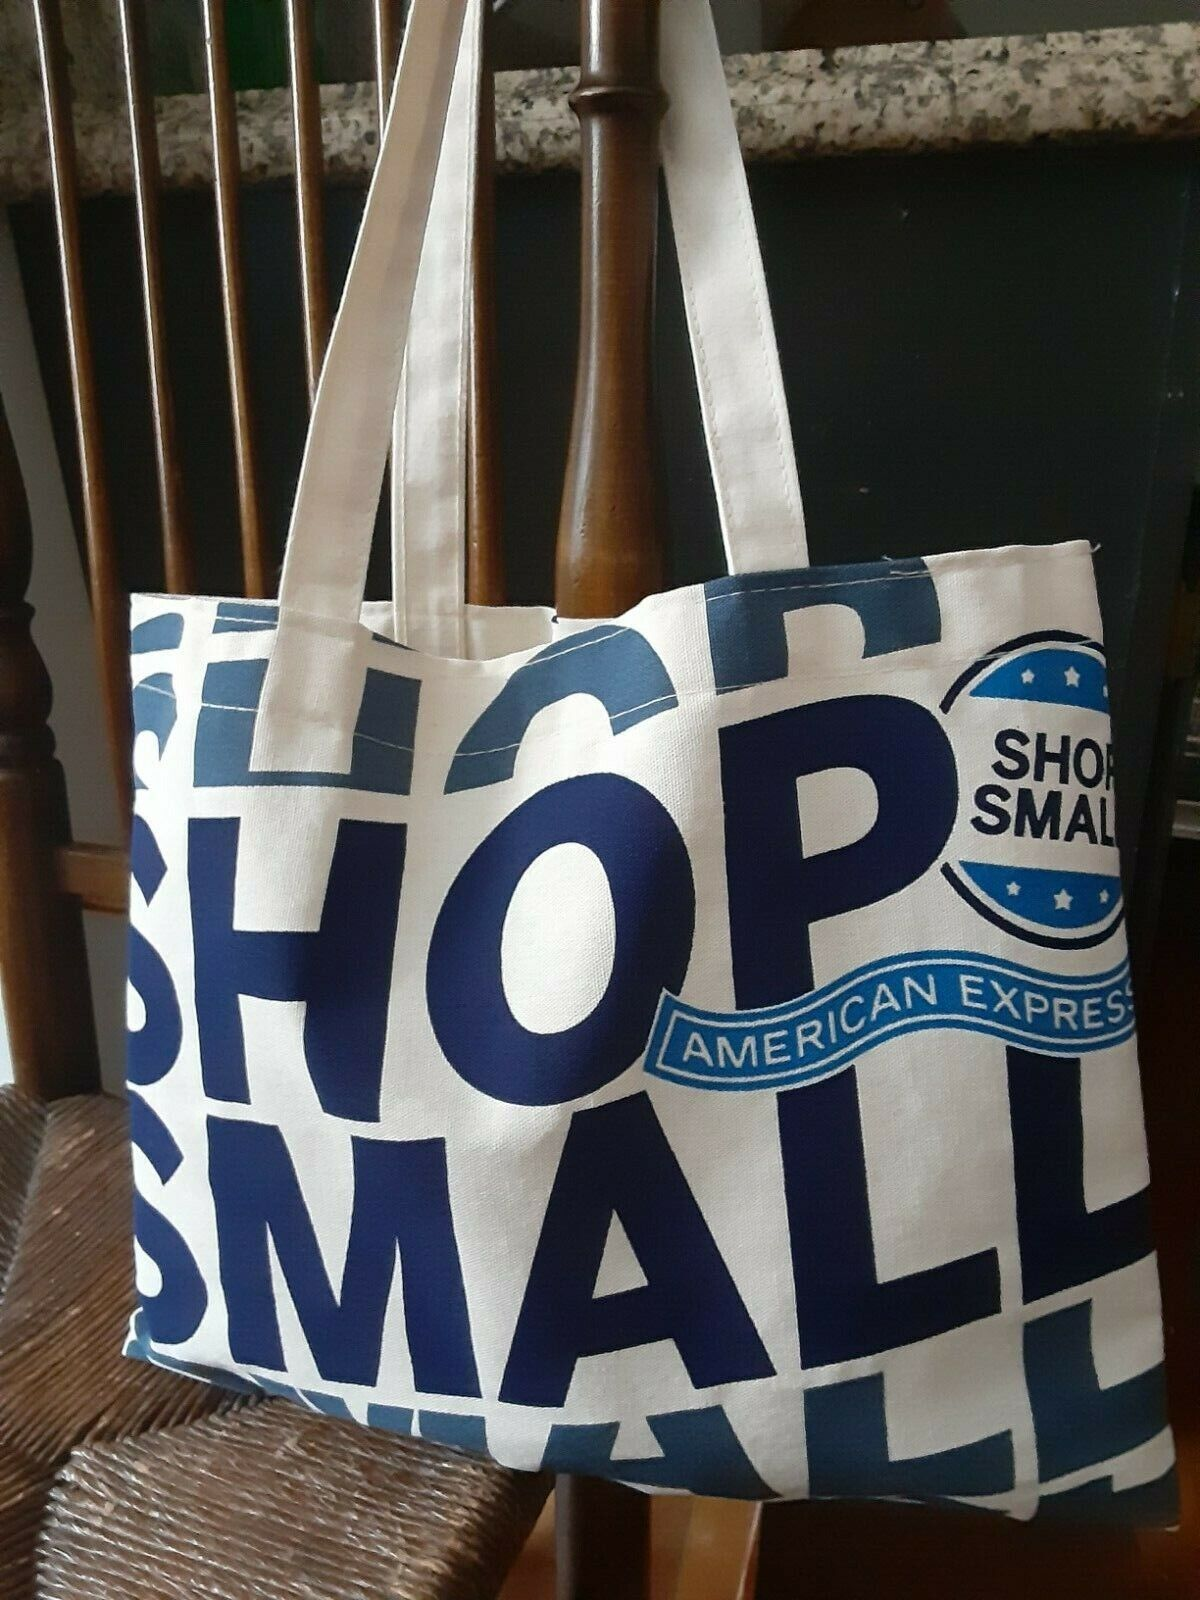 Small Business Canvas Bag - White And Blue - New - Great For Grocery And Shop  - $1.15